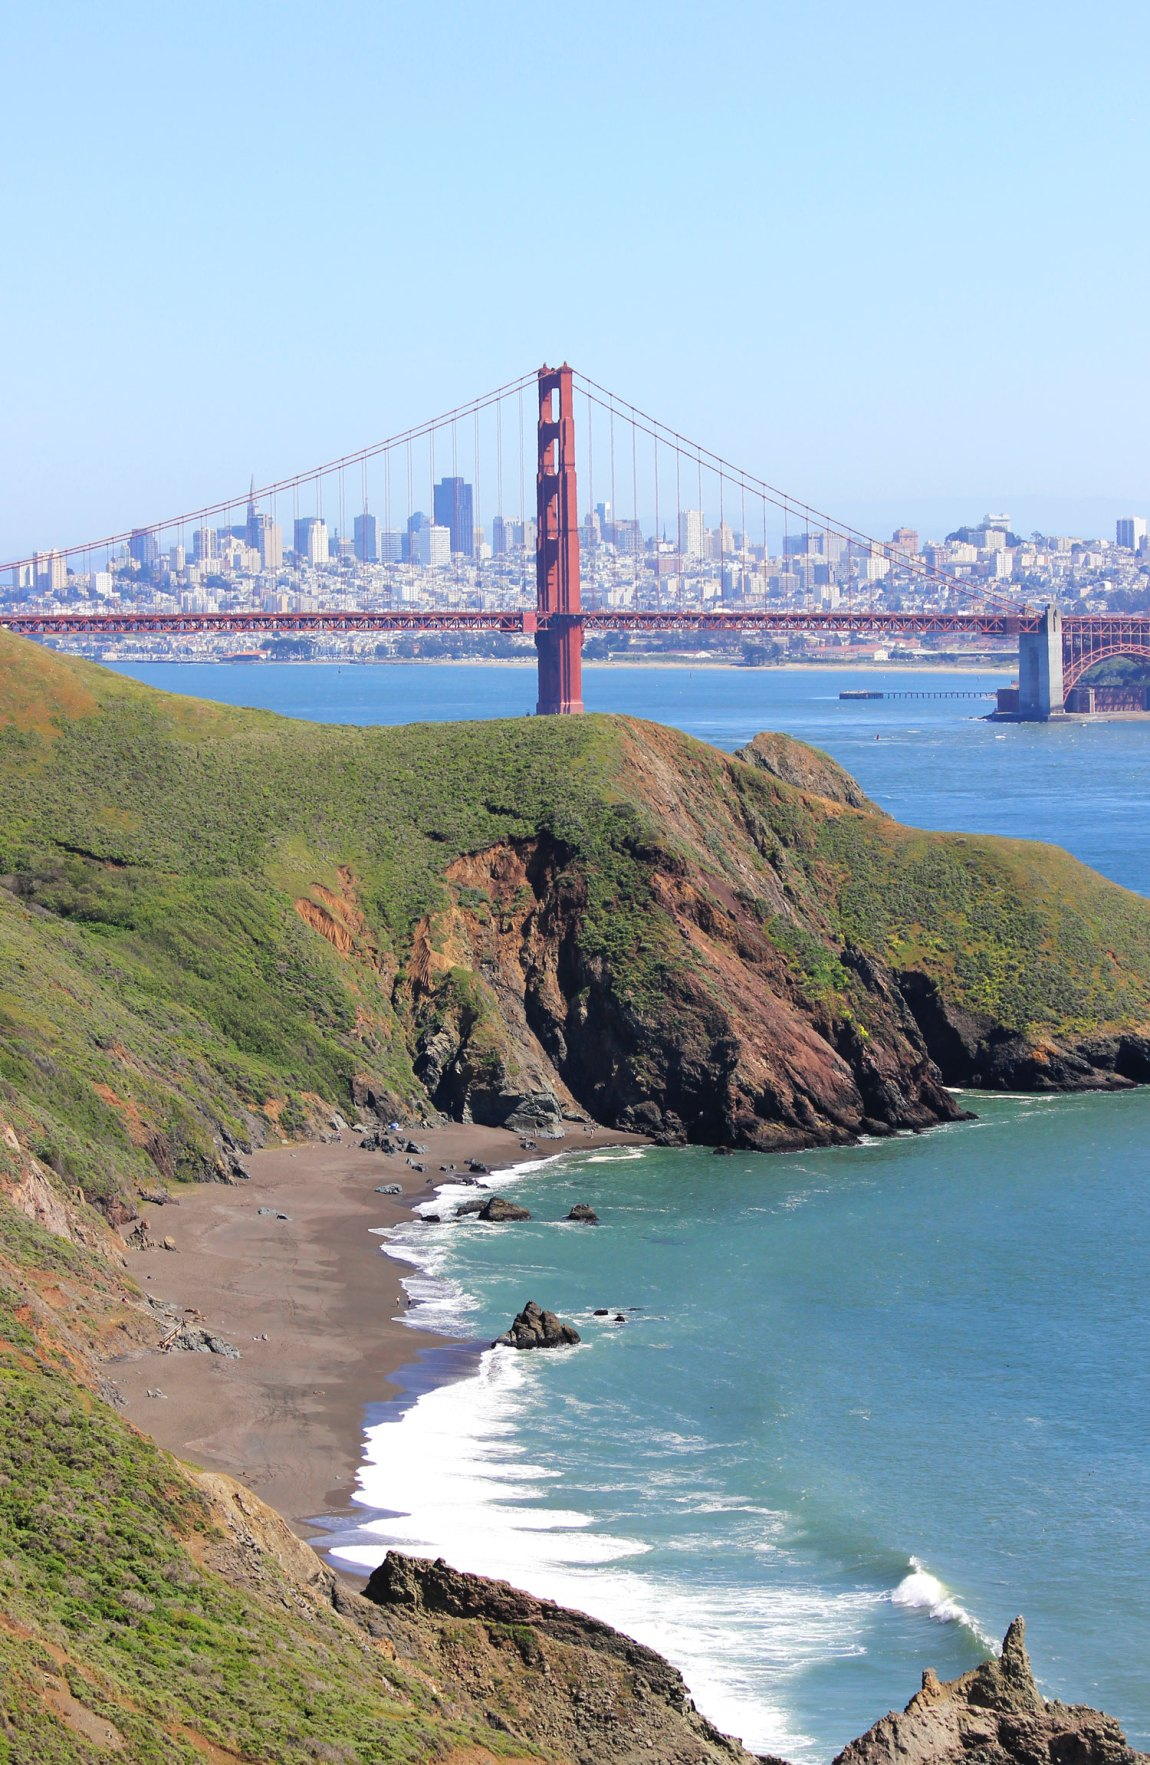 Savannah-Rose-Travels---San-Francisco,-California---Day-1